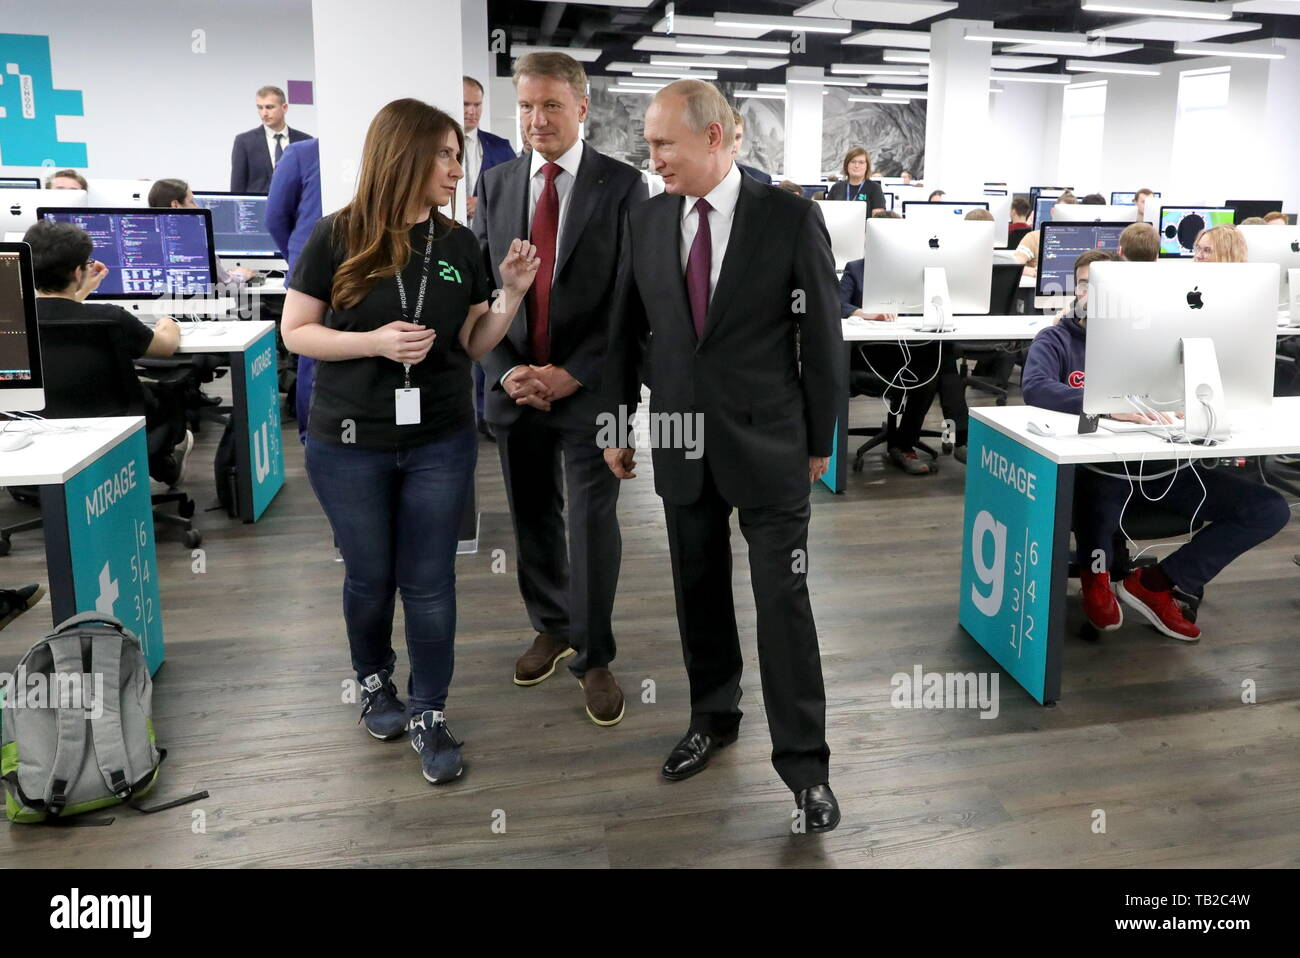 Moscow, Russia. 30th May, 2019. MOSCOW, RUSSIA - MAY 30, 2019: Russia's President Vladimir Putin and German Gref (R-L), Sberbank CEO and Executive Board Chairman, visit School 21, an IT school opened by Sberbank last year to provide hi-tech companies with programmers. Mikhail Klimentyev/Russian Presidential Press and Information Office/TASS Credit: ITAR-TASS News Agency/Alamy Live News - Stock Image